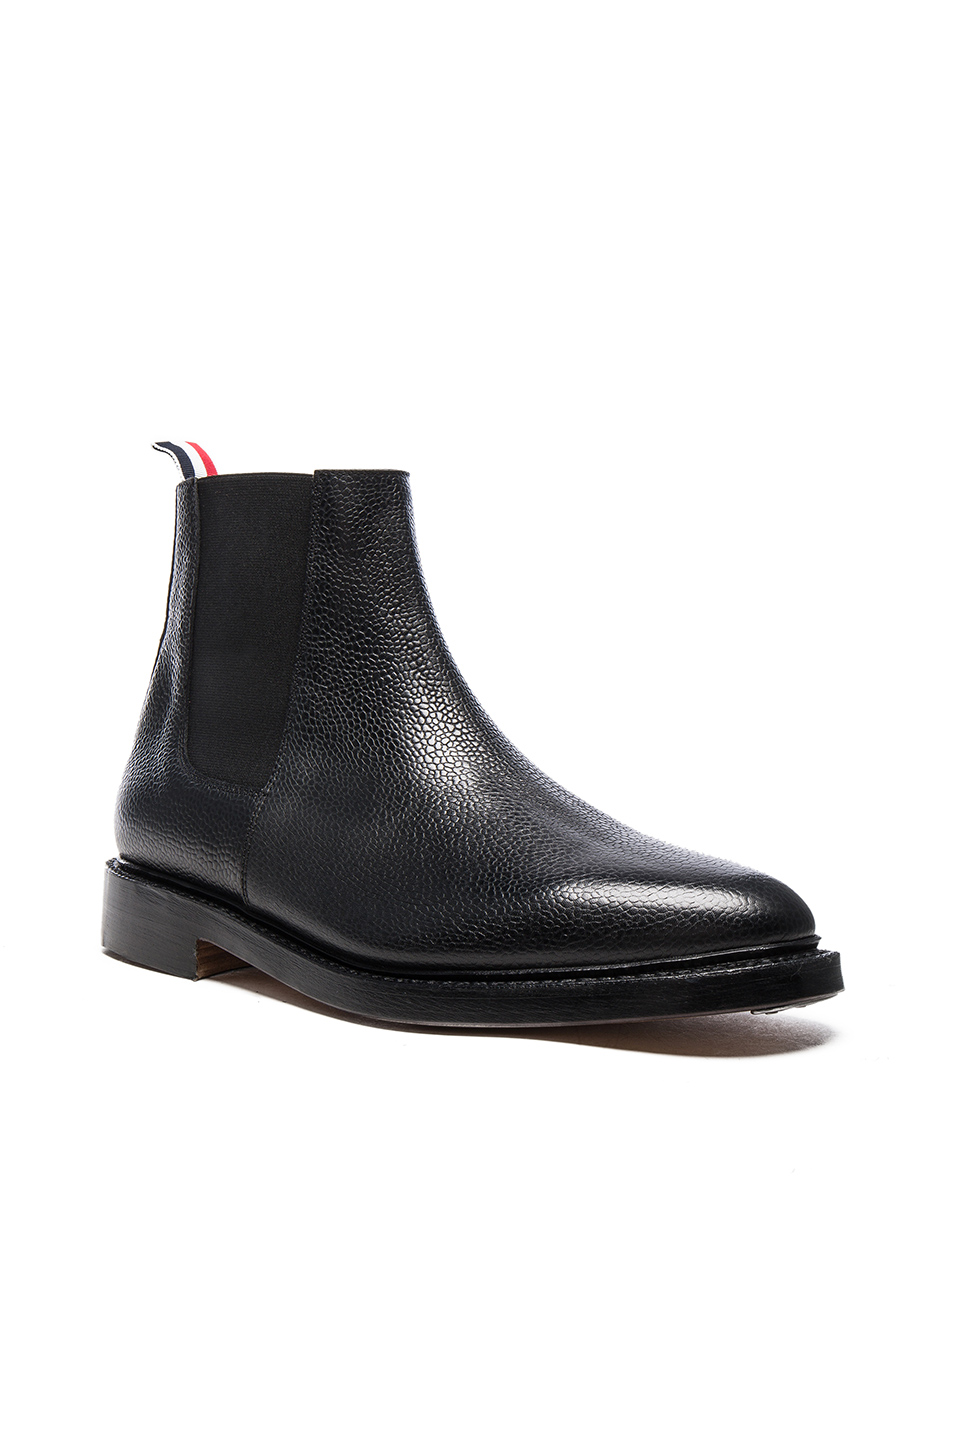 Thom Browne Chelsea Boots in Black